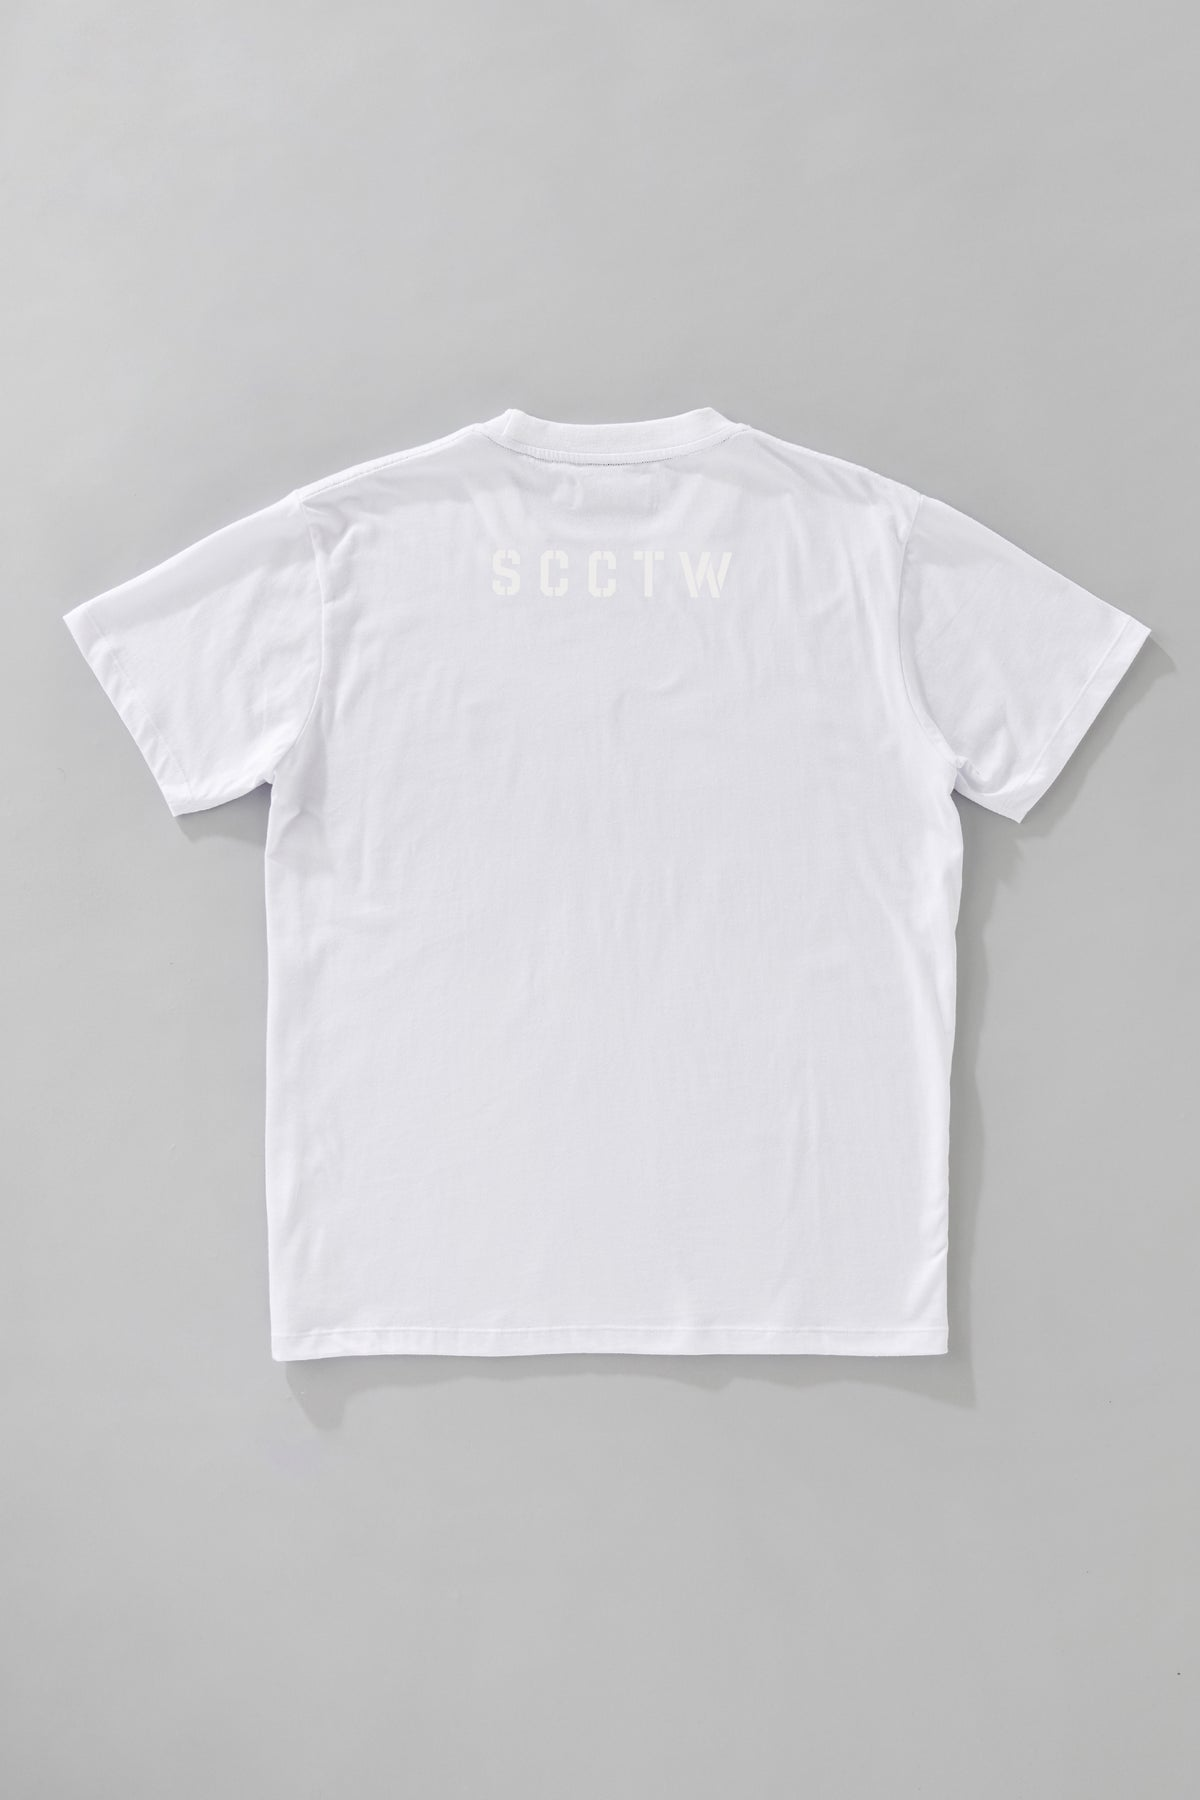 Drippy T Shirt - White